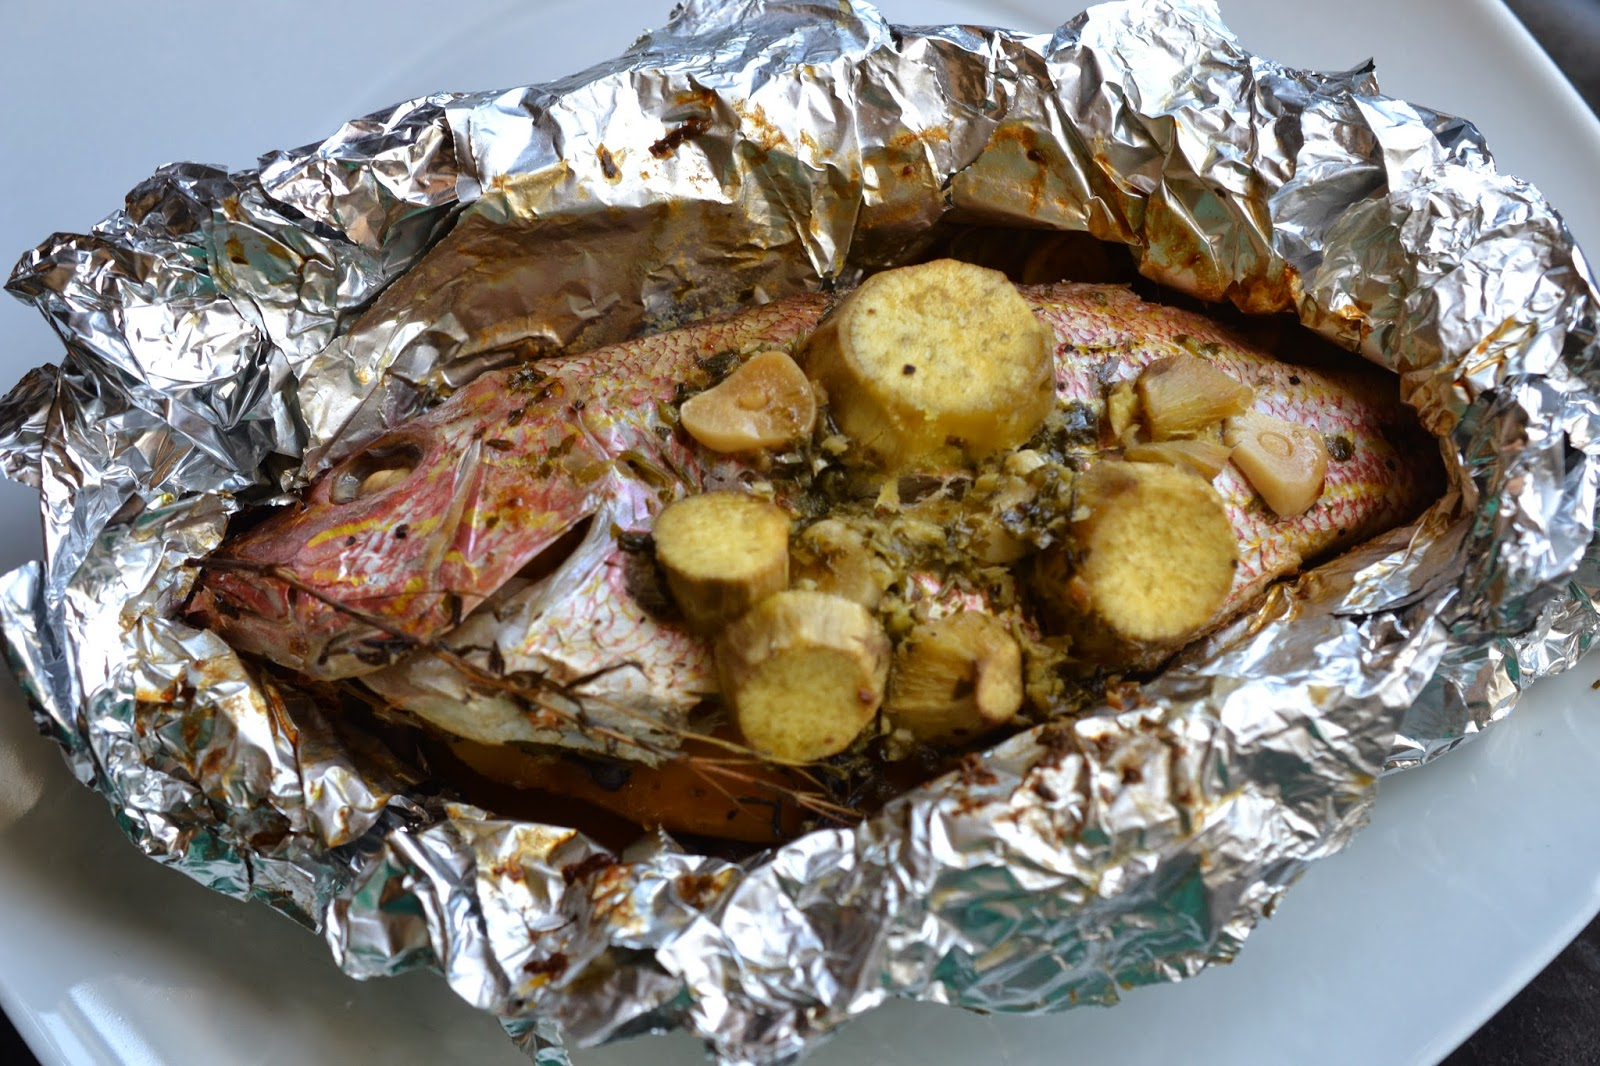 Greedy girl foil roasted fish for Broil fish in oven